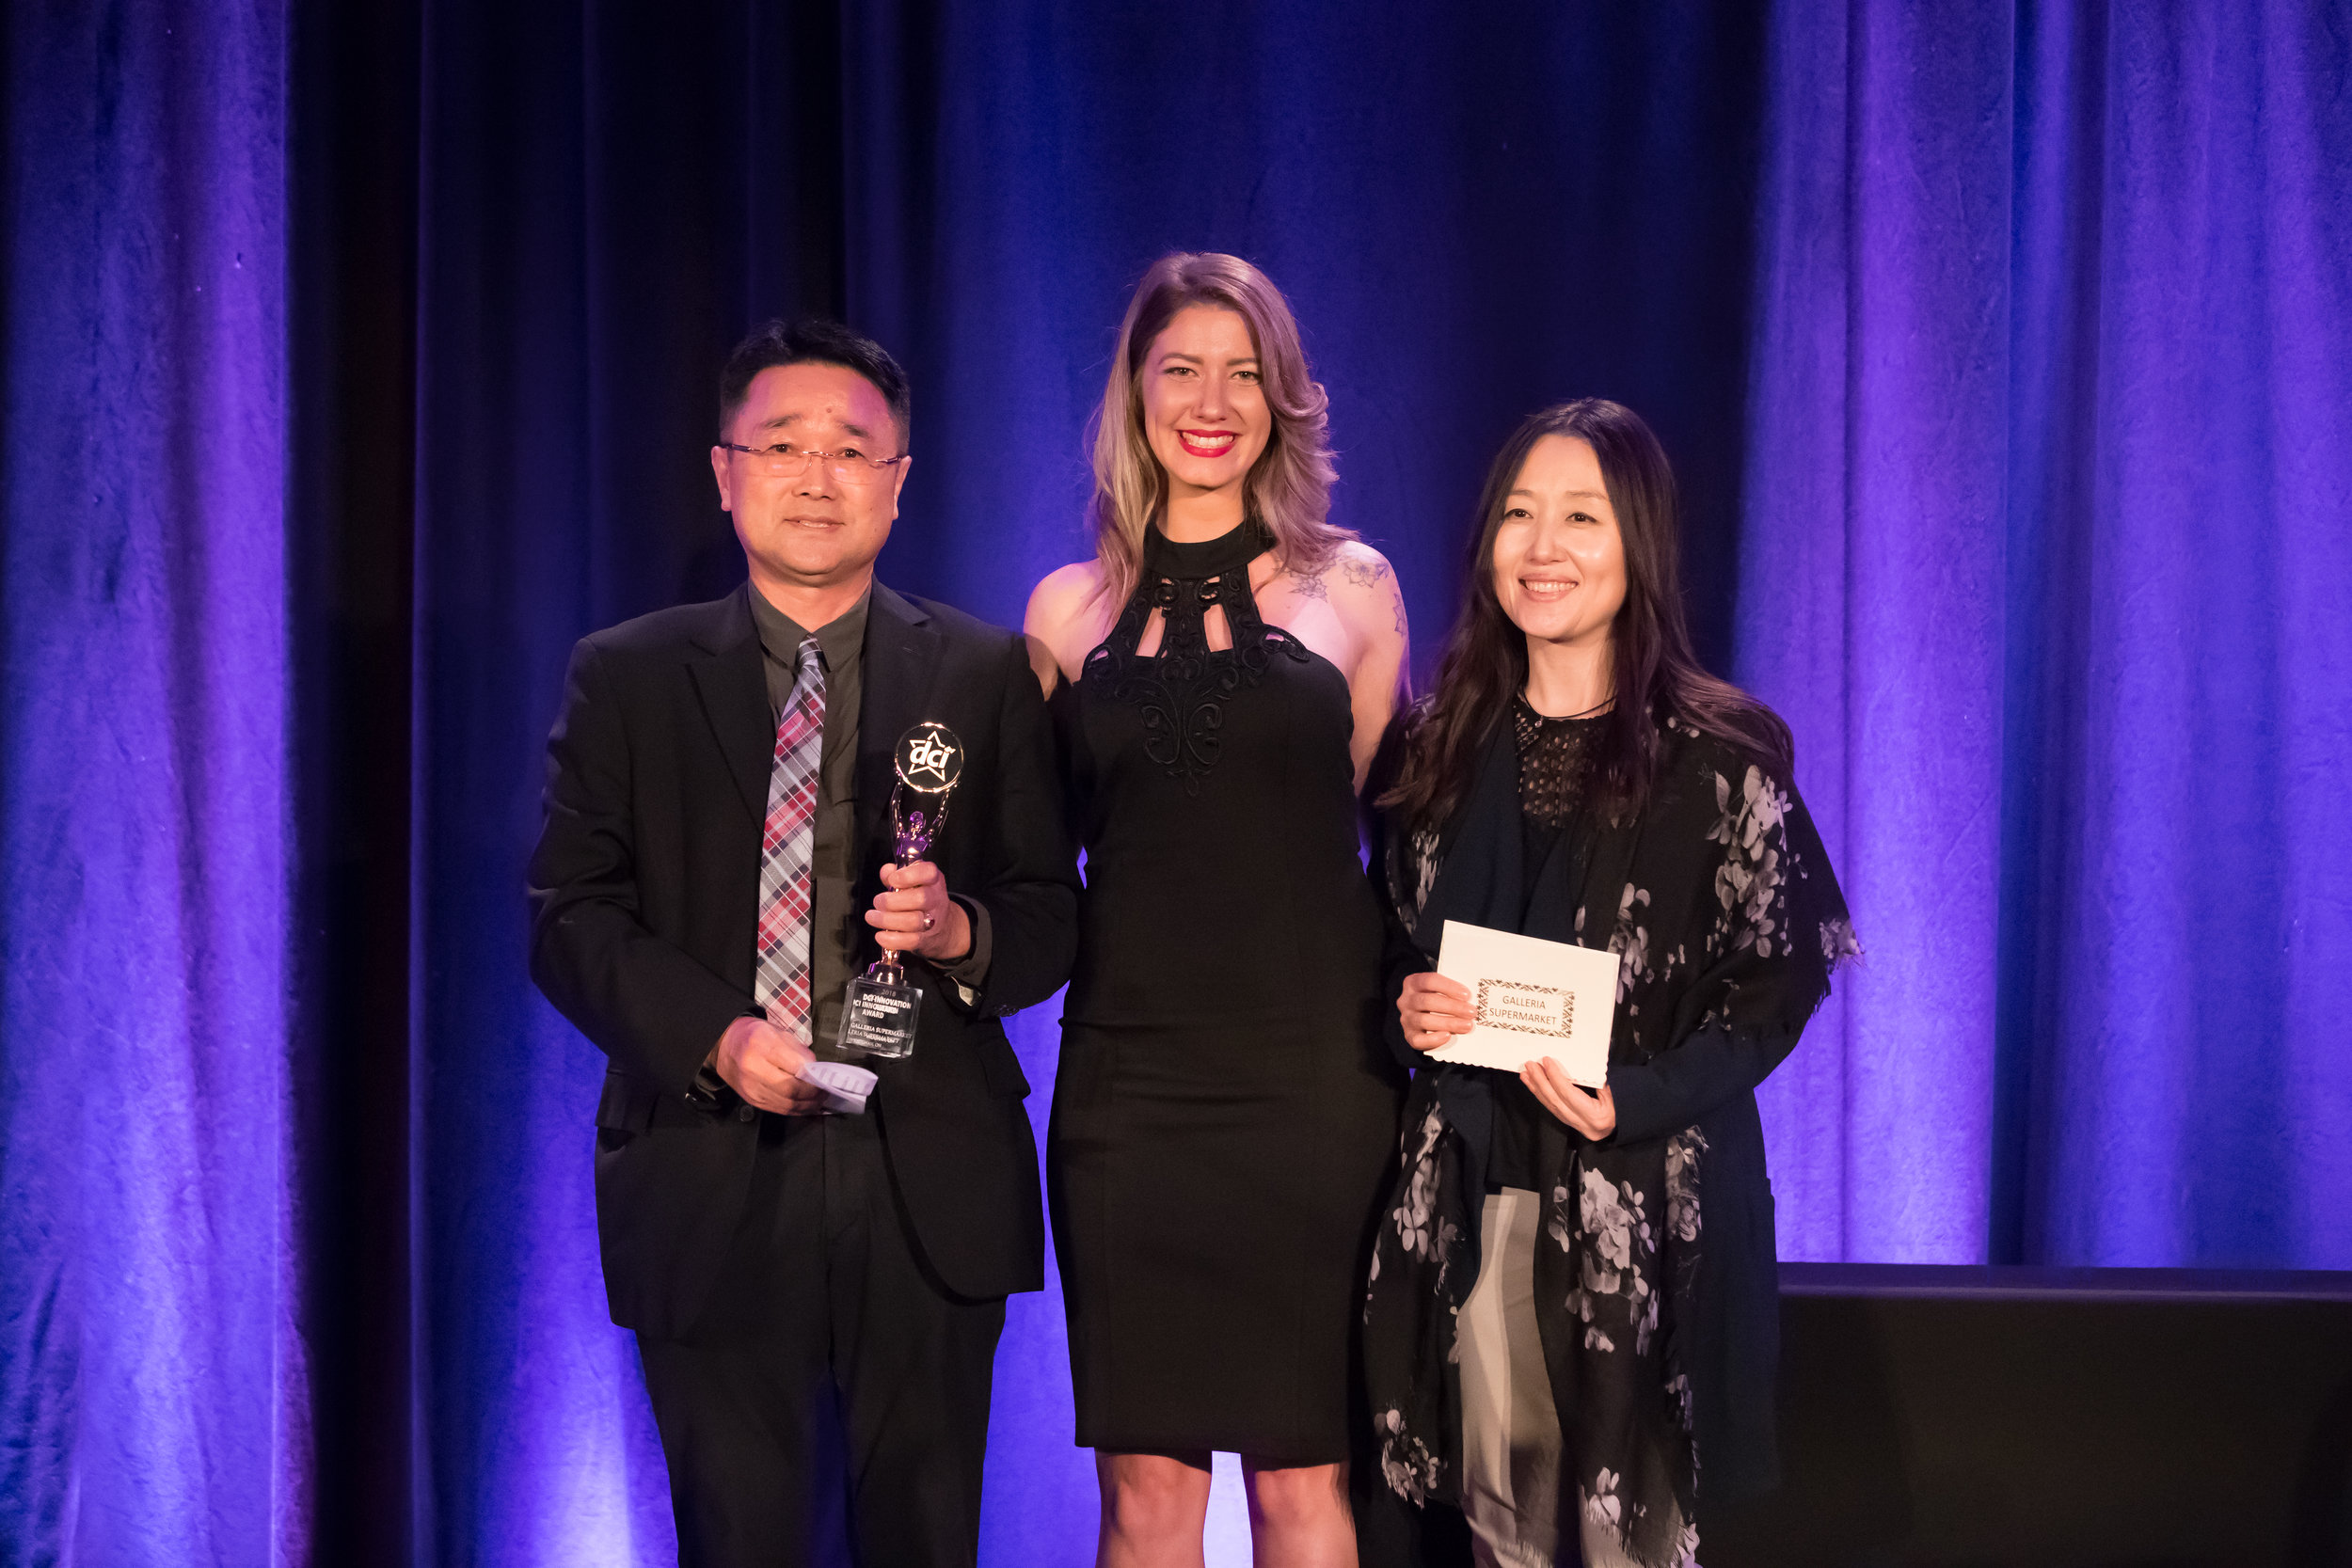 Peter Shin (Left) and Chris Yu (Right) With Star Awards Presenter (Centre)